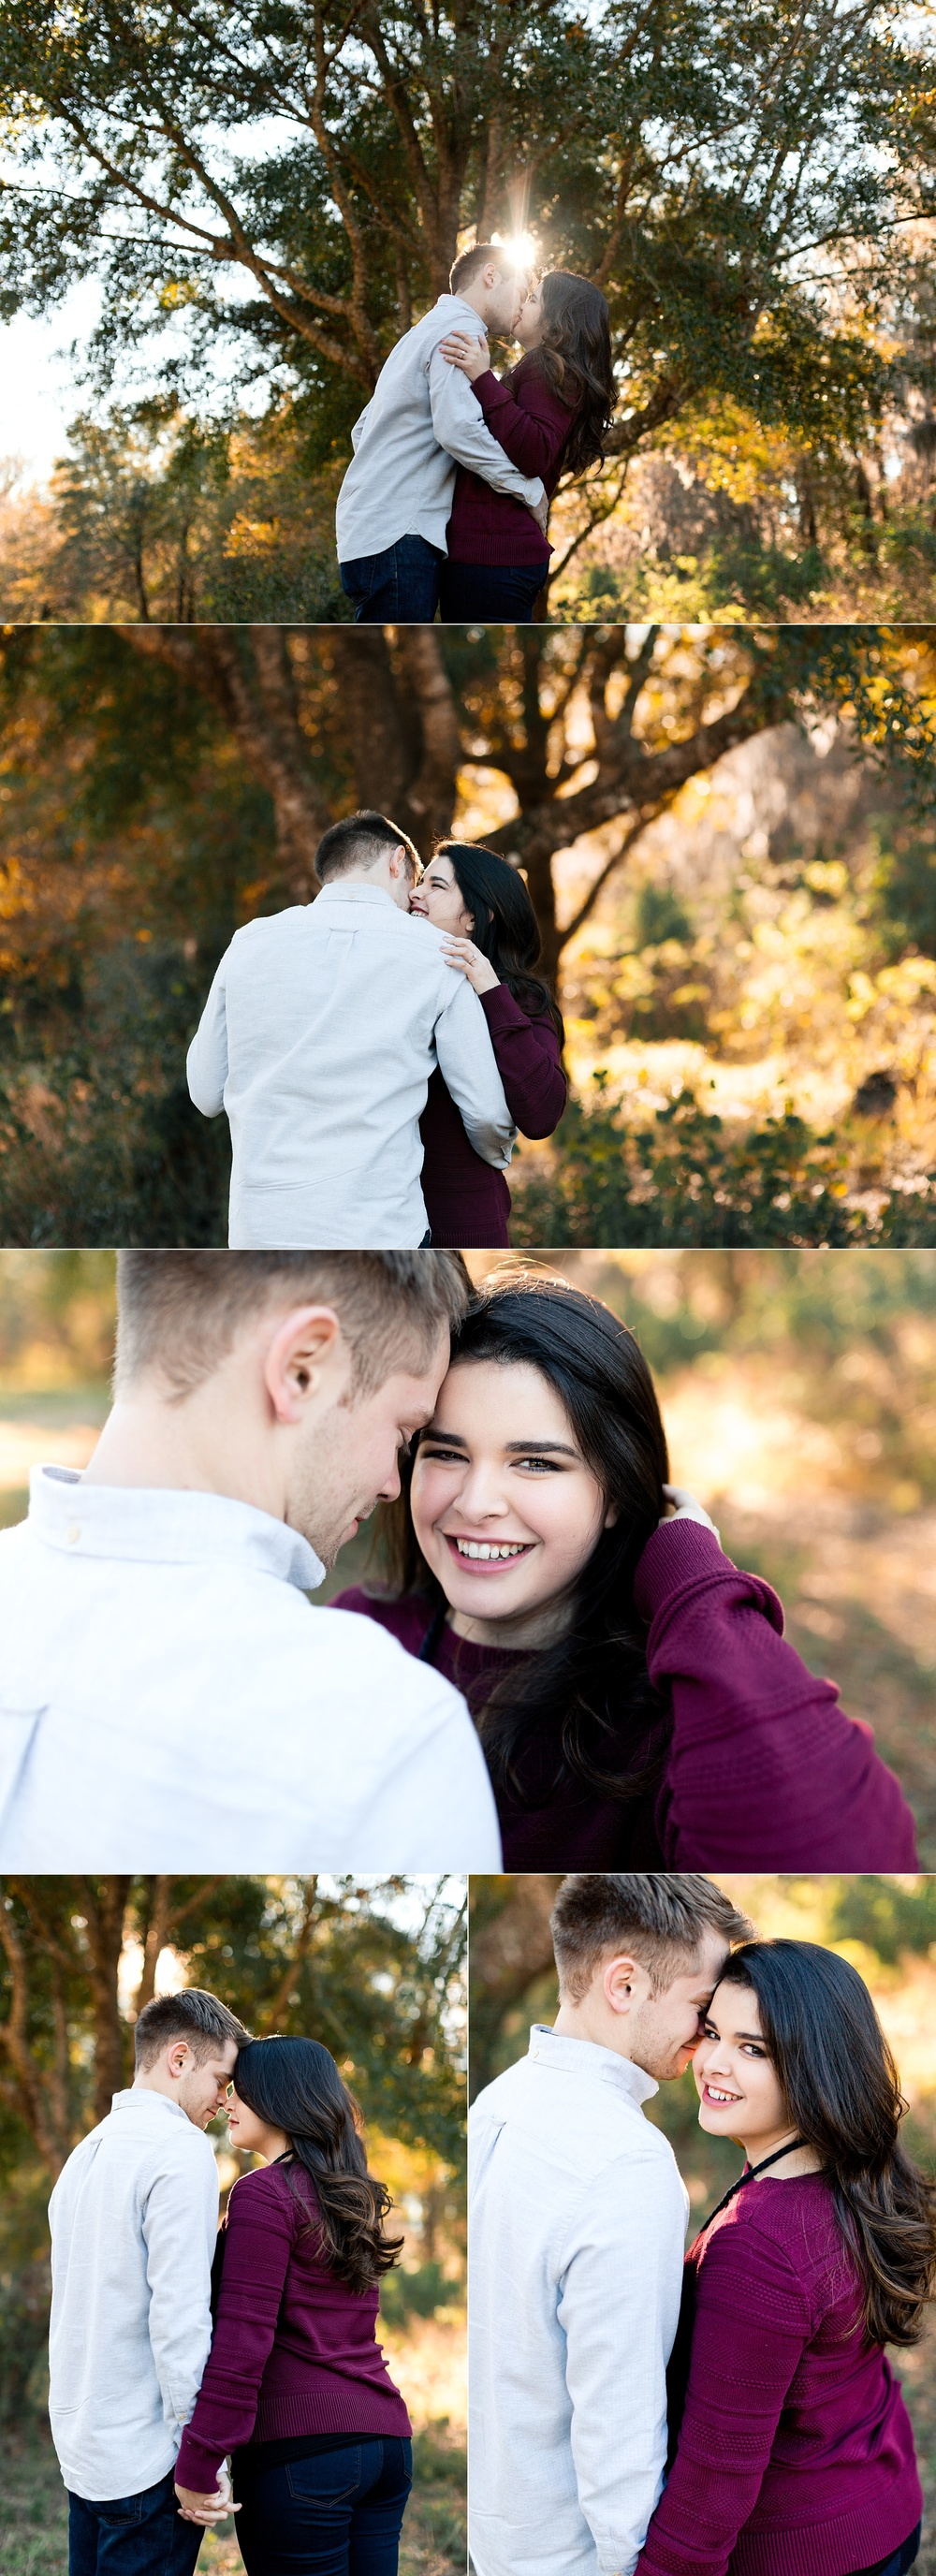 florida-winter-woodsy-engagement-session-4.jpg